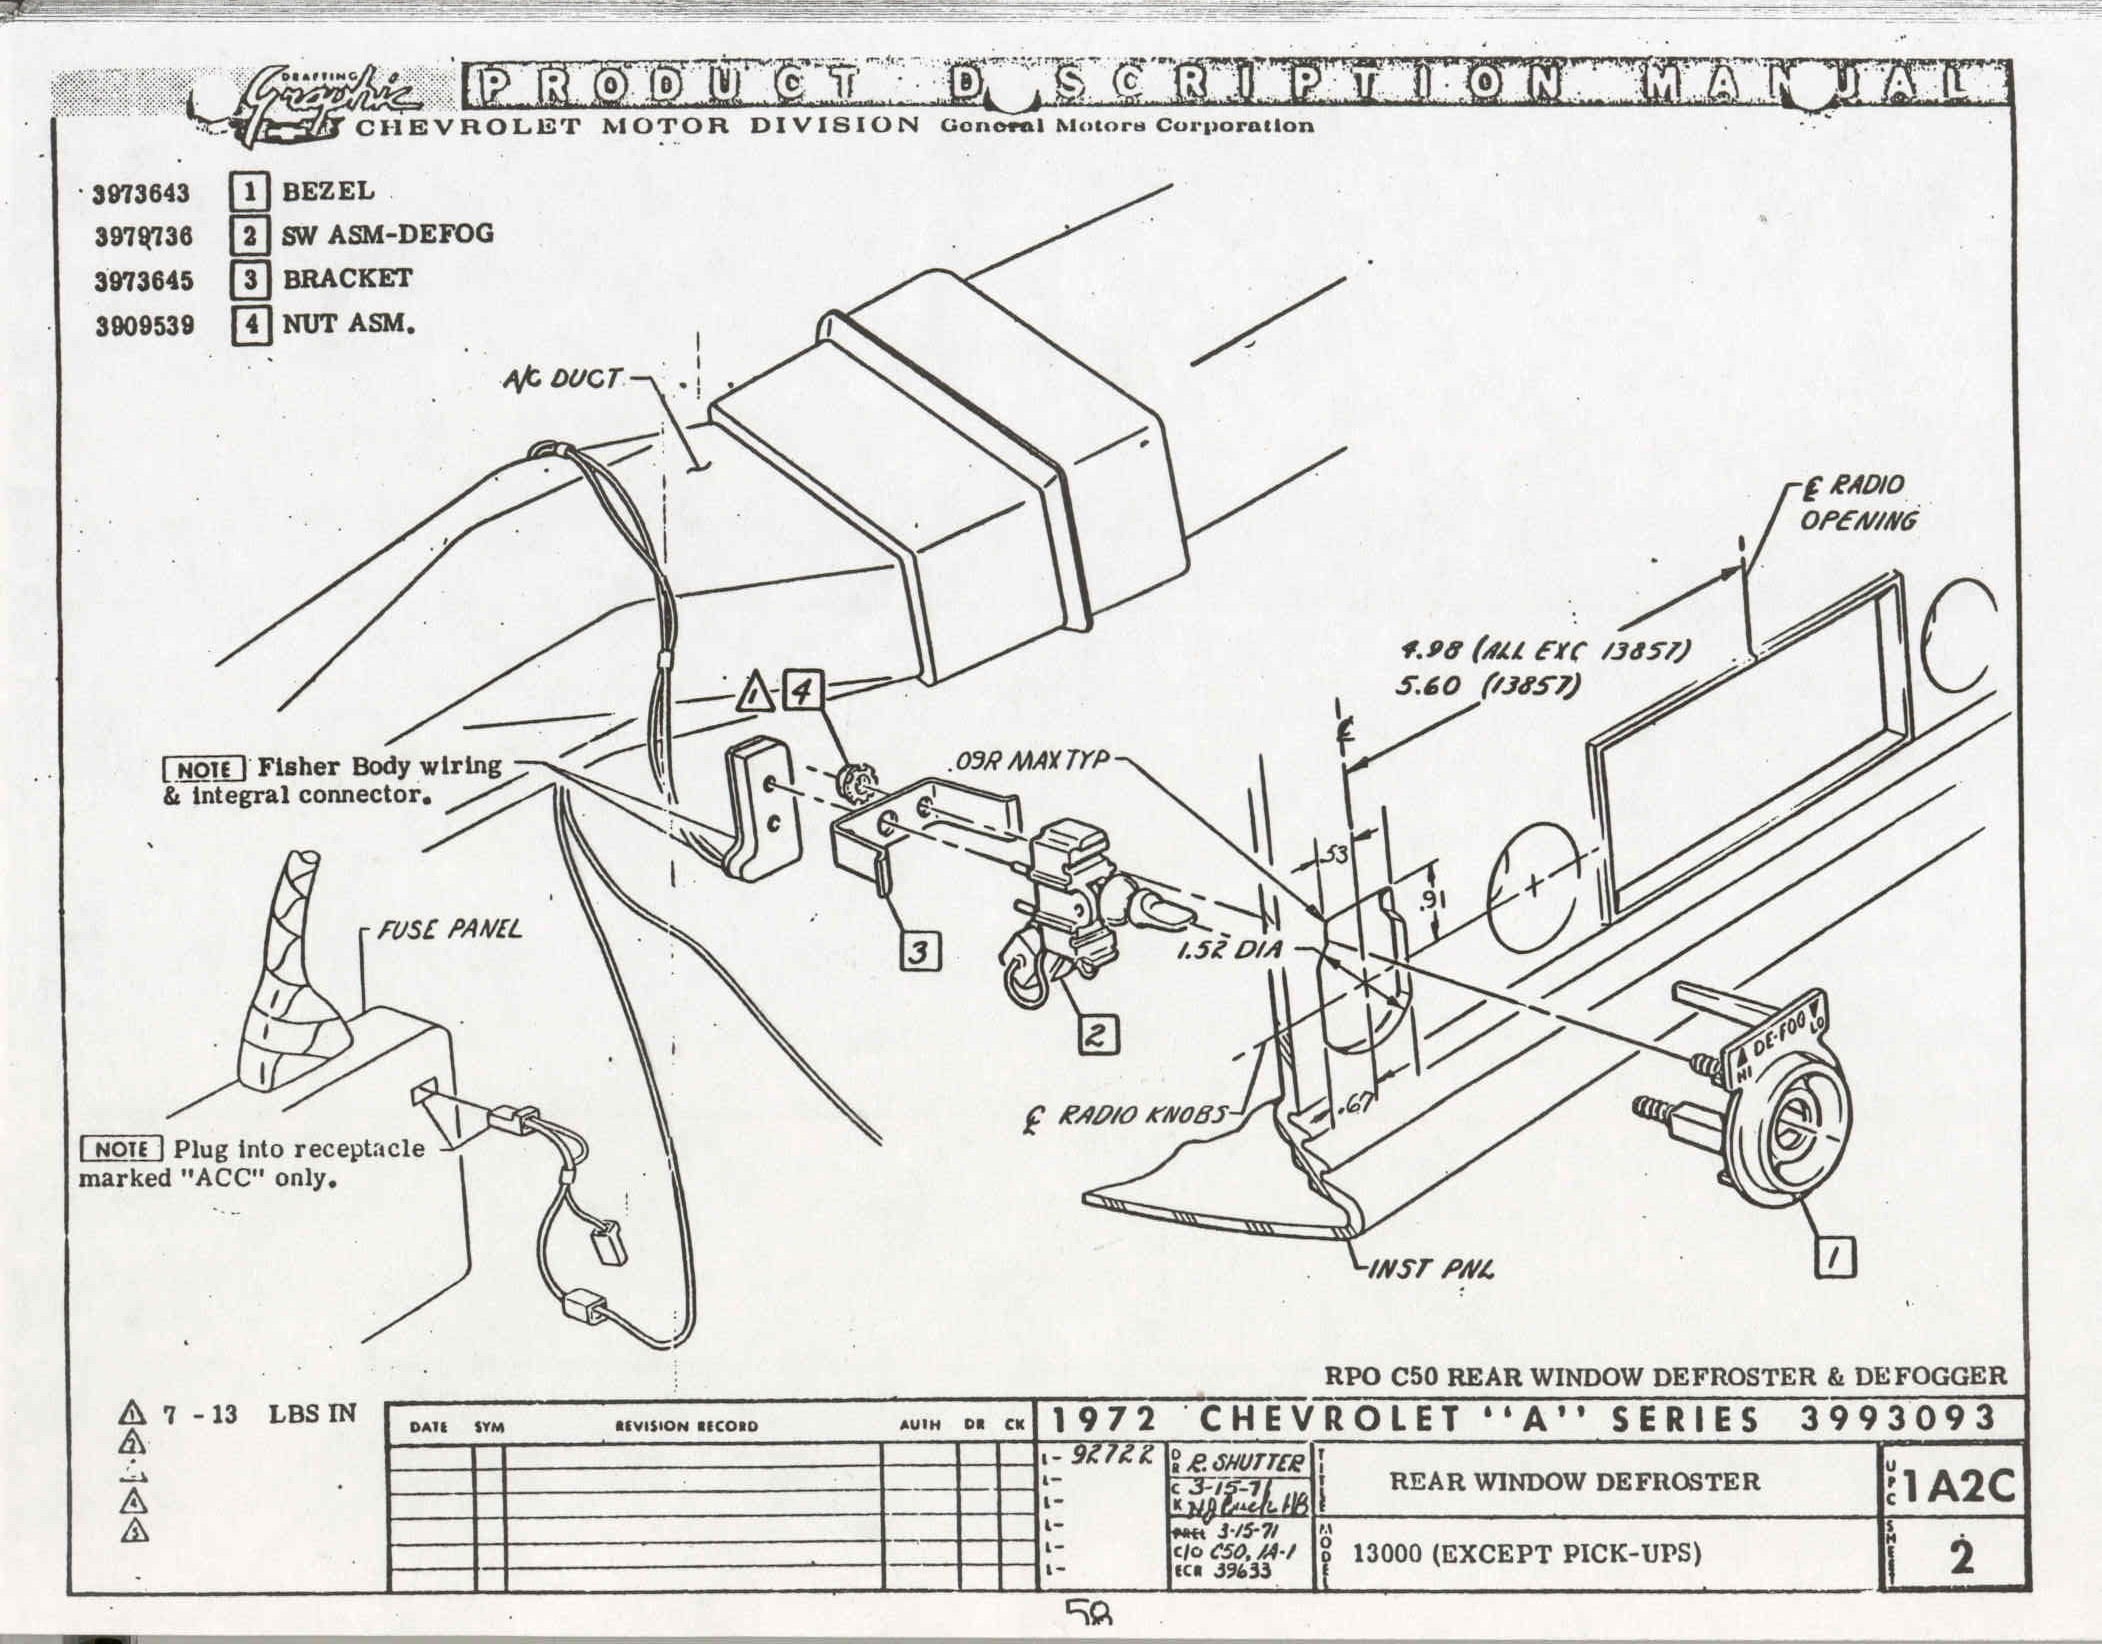 Technicalinfo on gm steering column wiring diagram